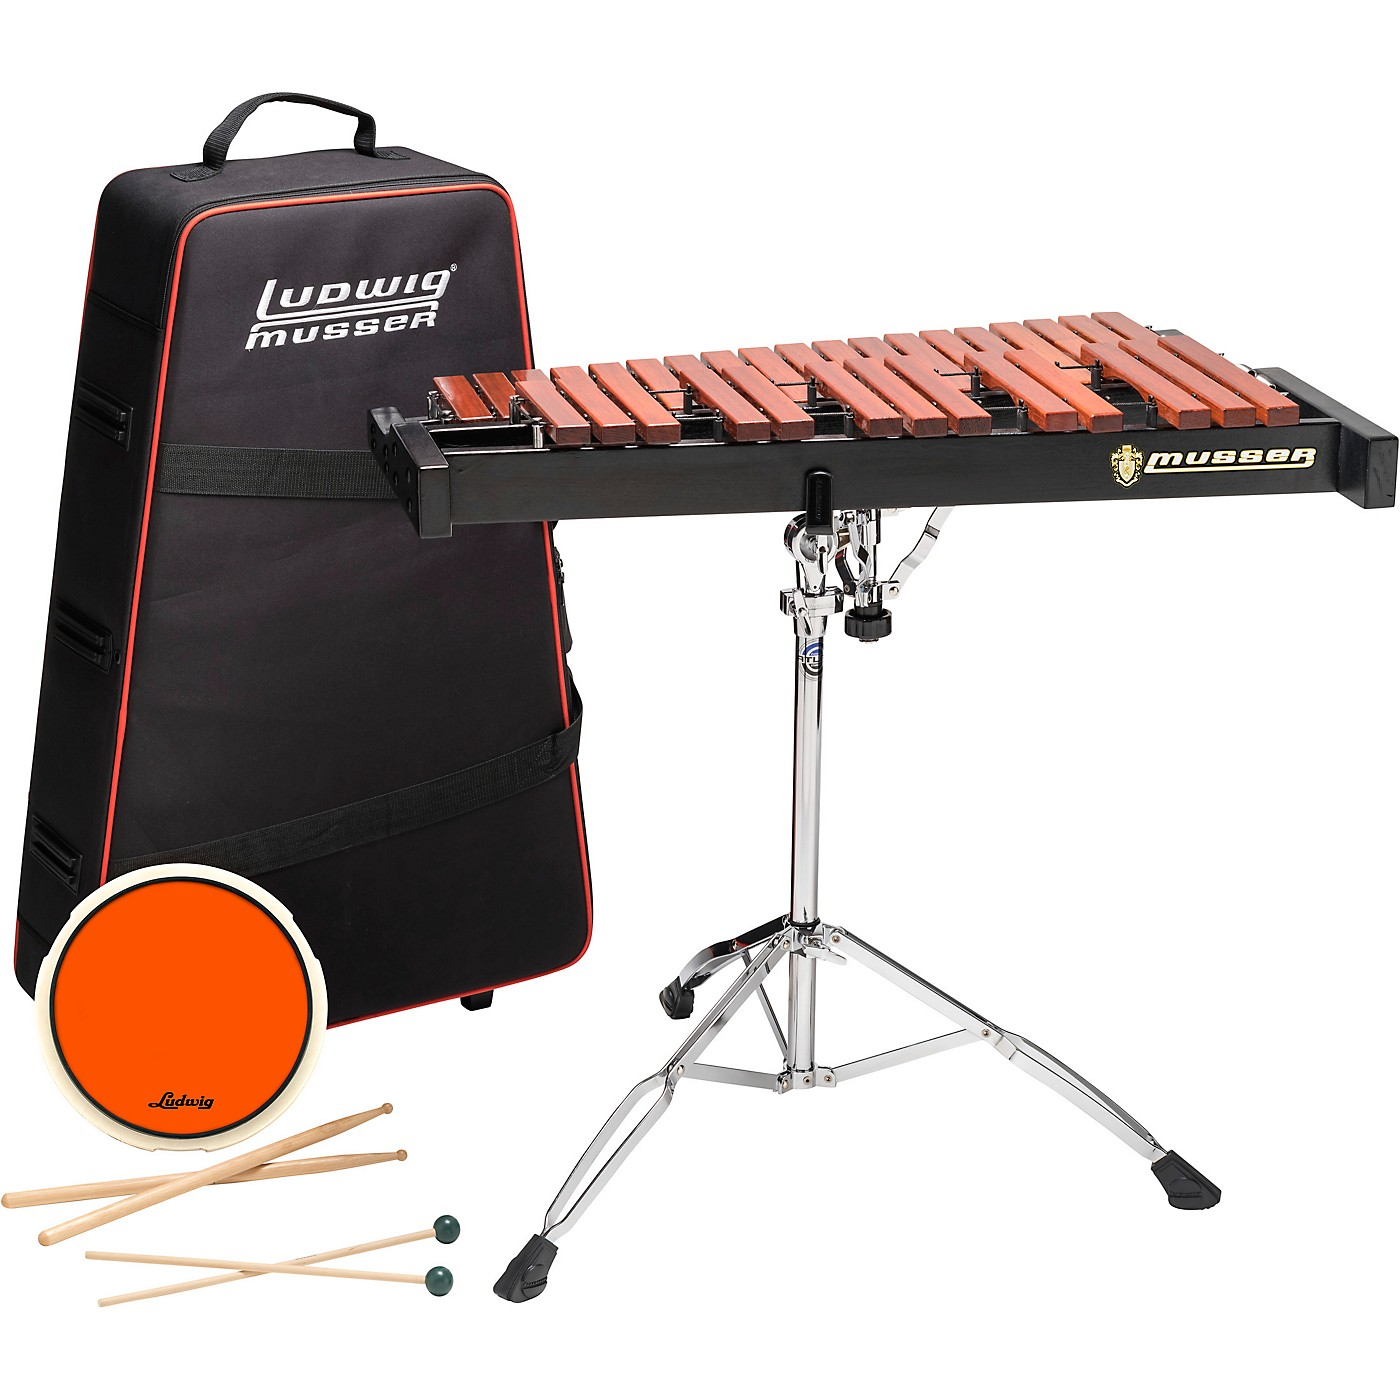 Musser Xylophone Kit 2.5 Octave With Pad, Stand, Bag thumbnail